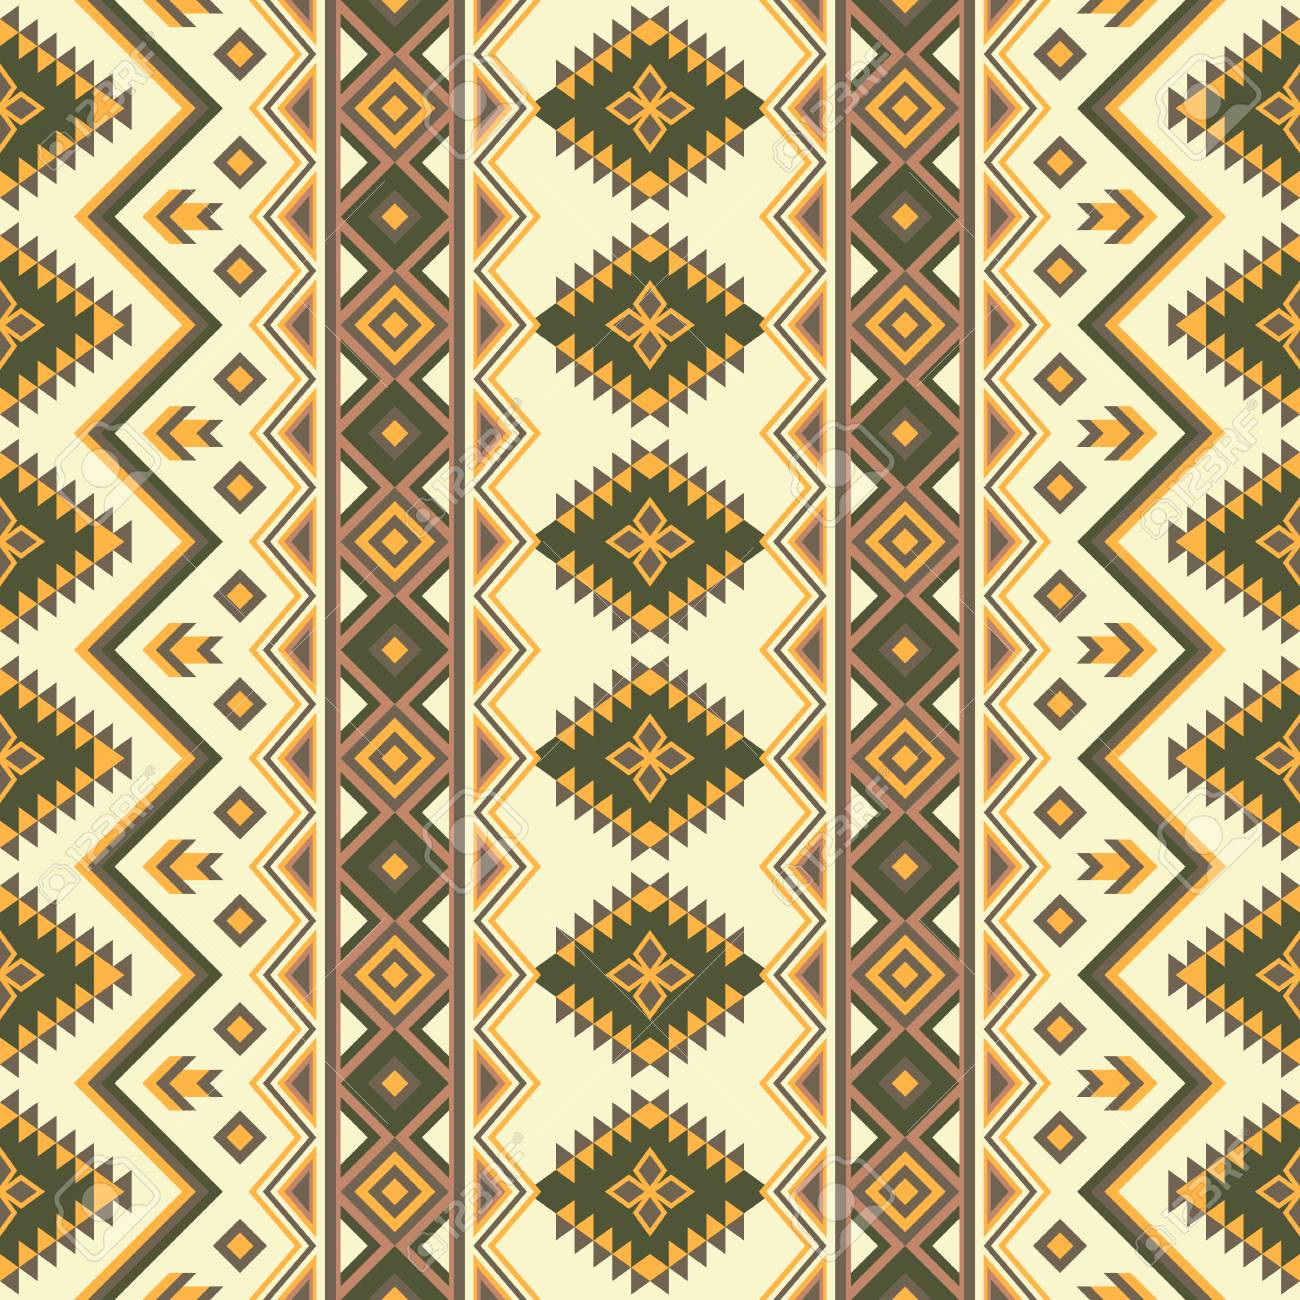 It is a photo of Native American Designs Printable within easy